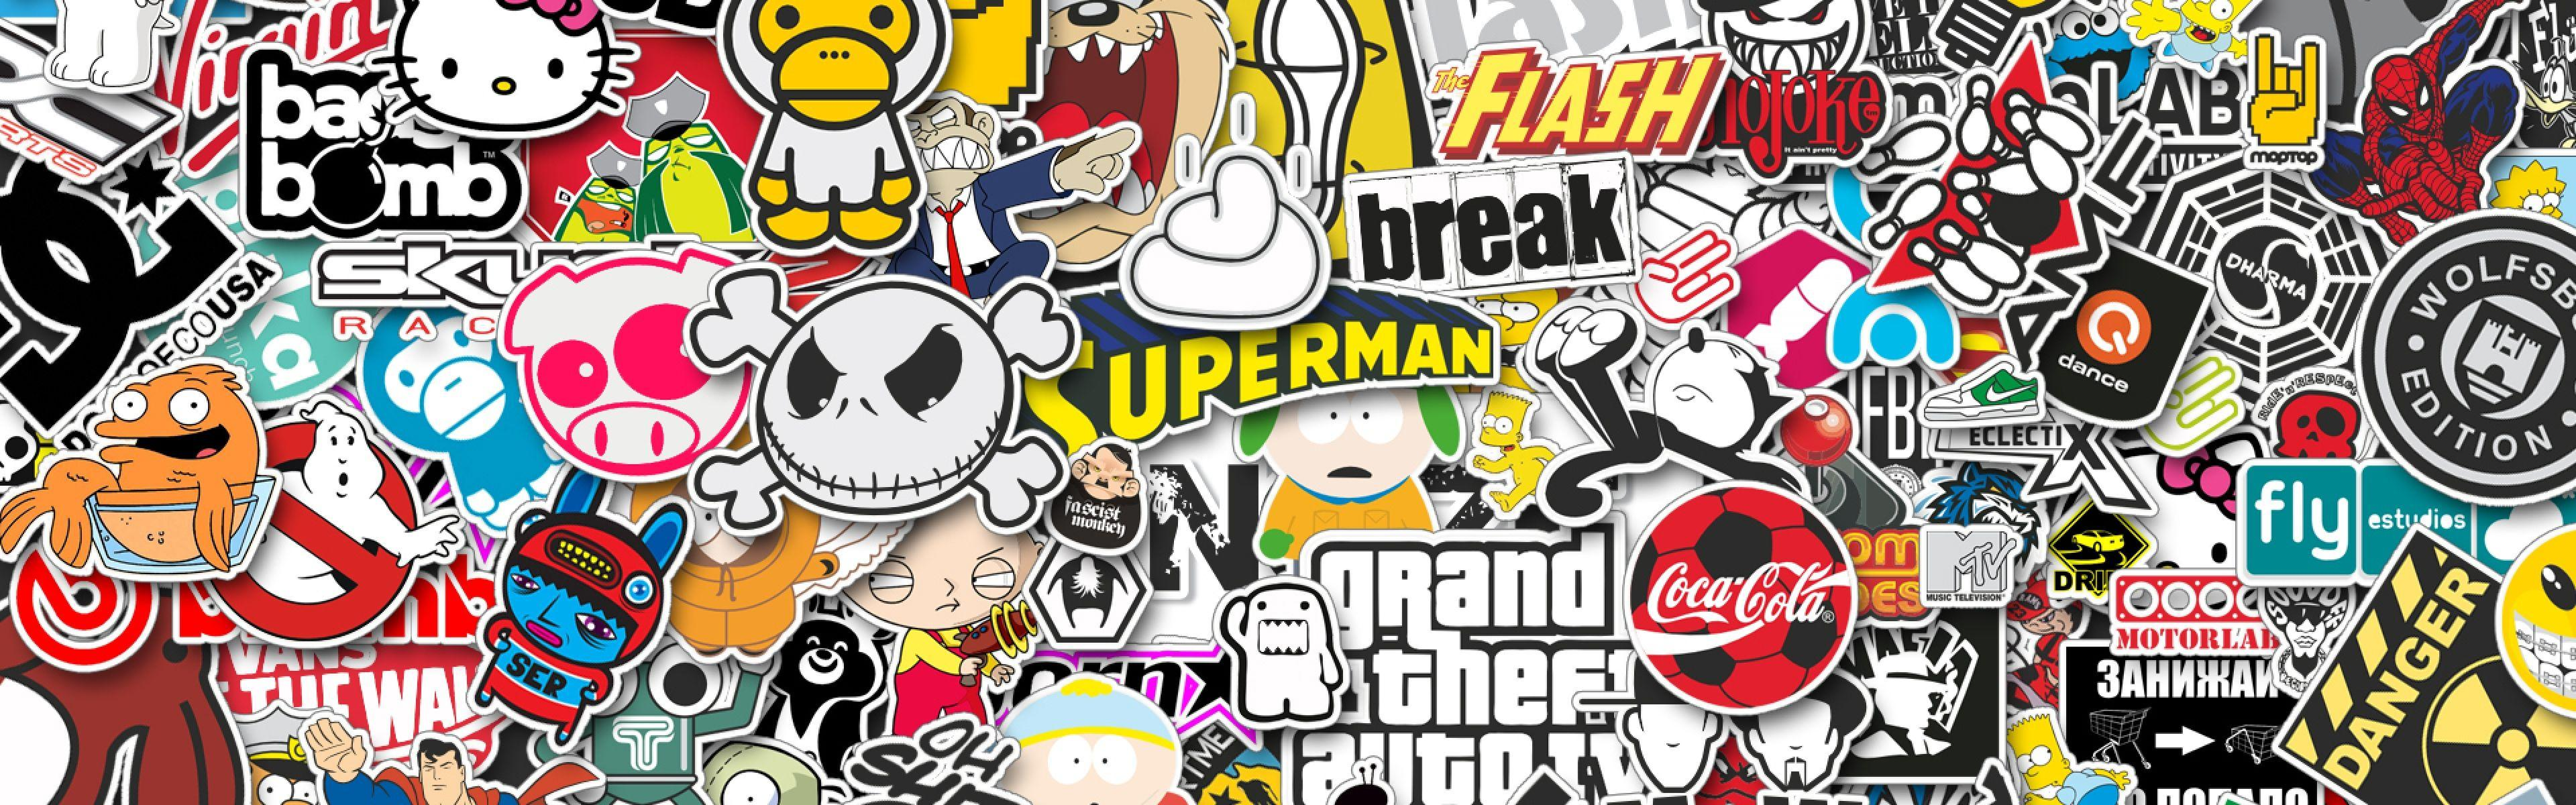 Sticker wallpaper qygjxz